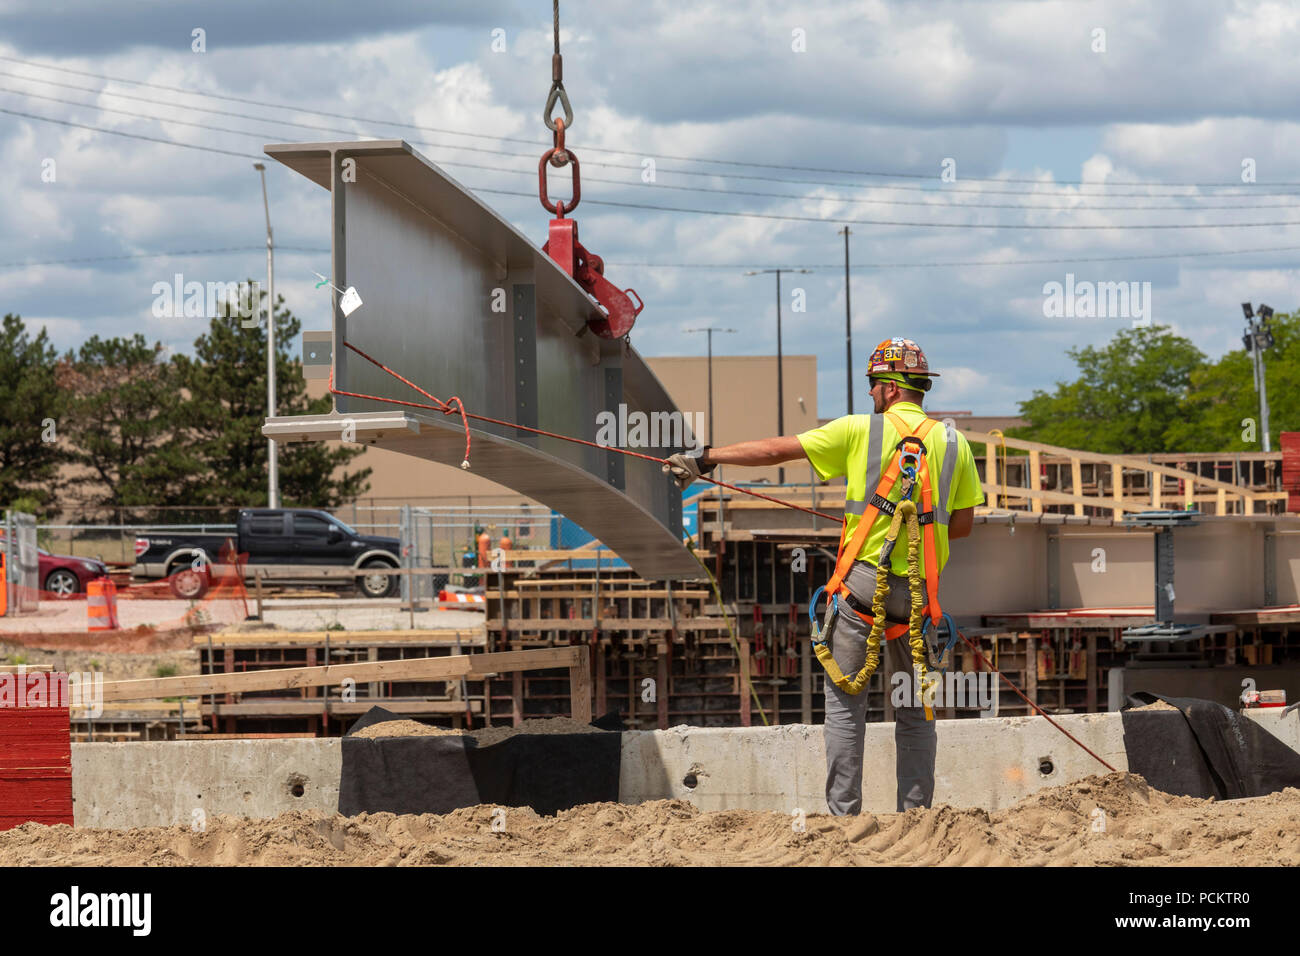 Detroit, Michigan - Workers set a girder in place while rebuilding a bridge on Interstate 94. Stock Photo